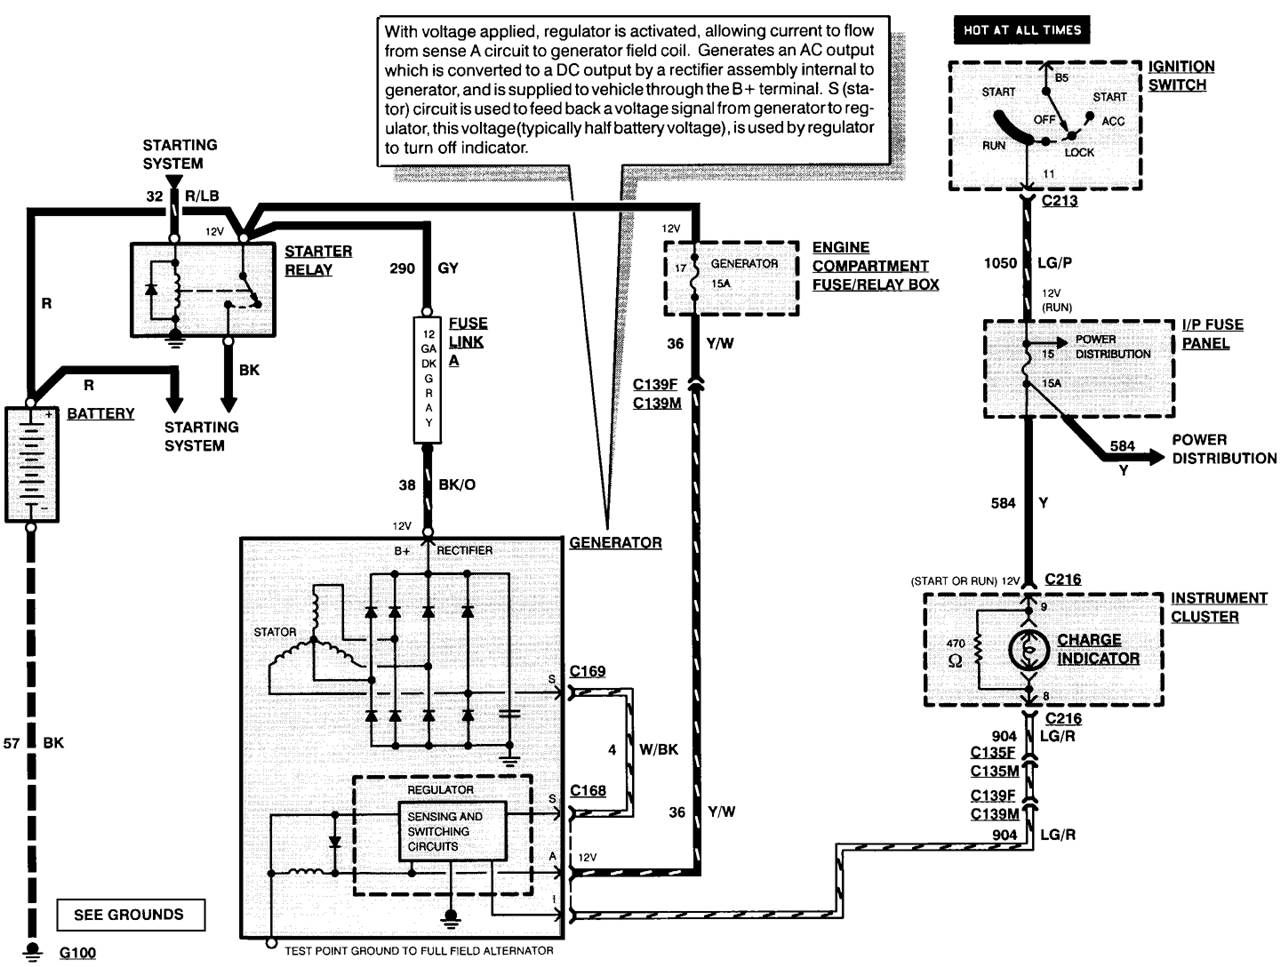 1995 Chrysler Lhs Alternator Wiring Diagram Simple Circuit Voltage Regulator Library Chevrolet Lumina